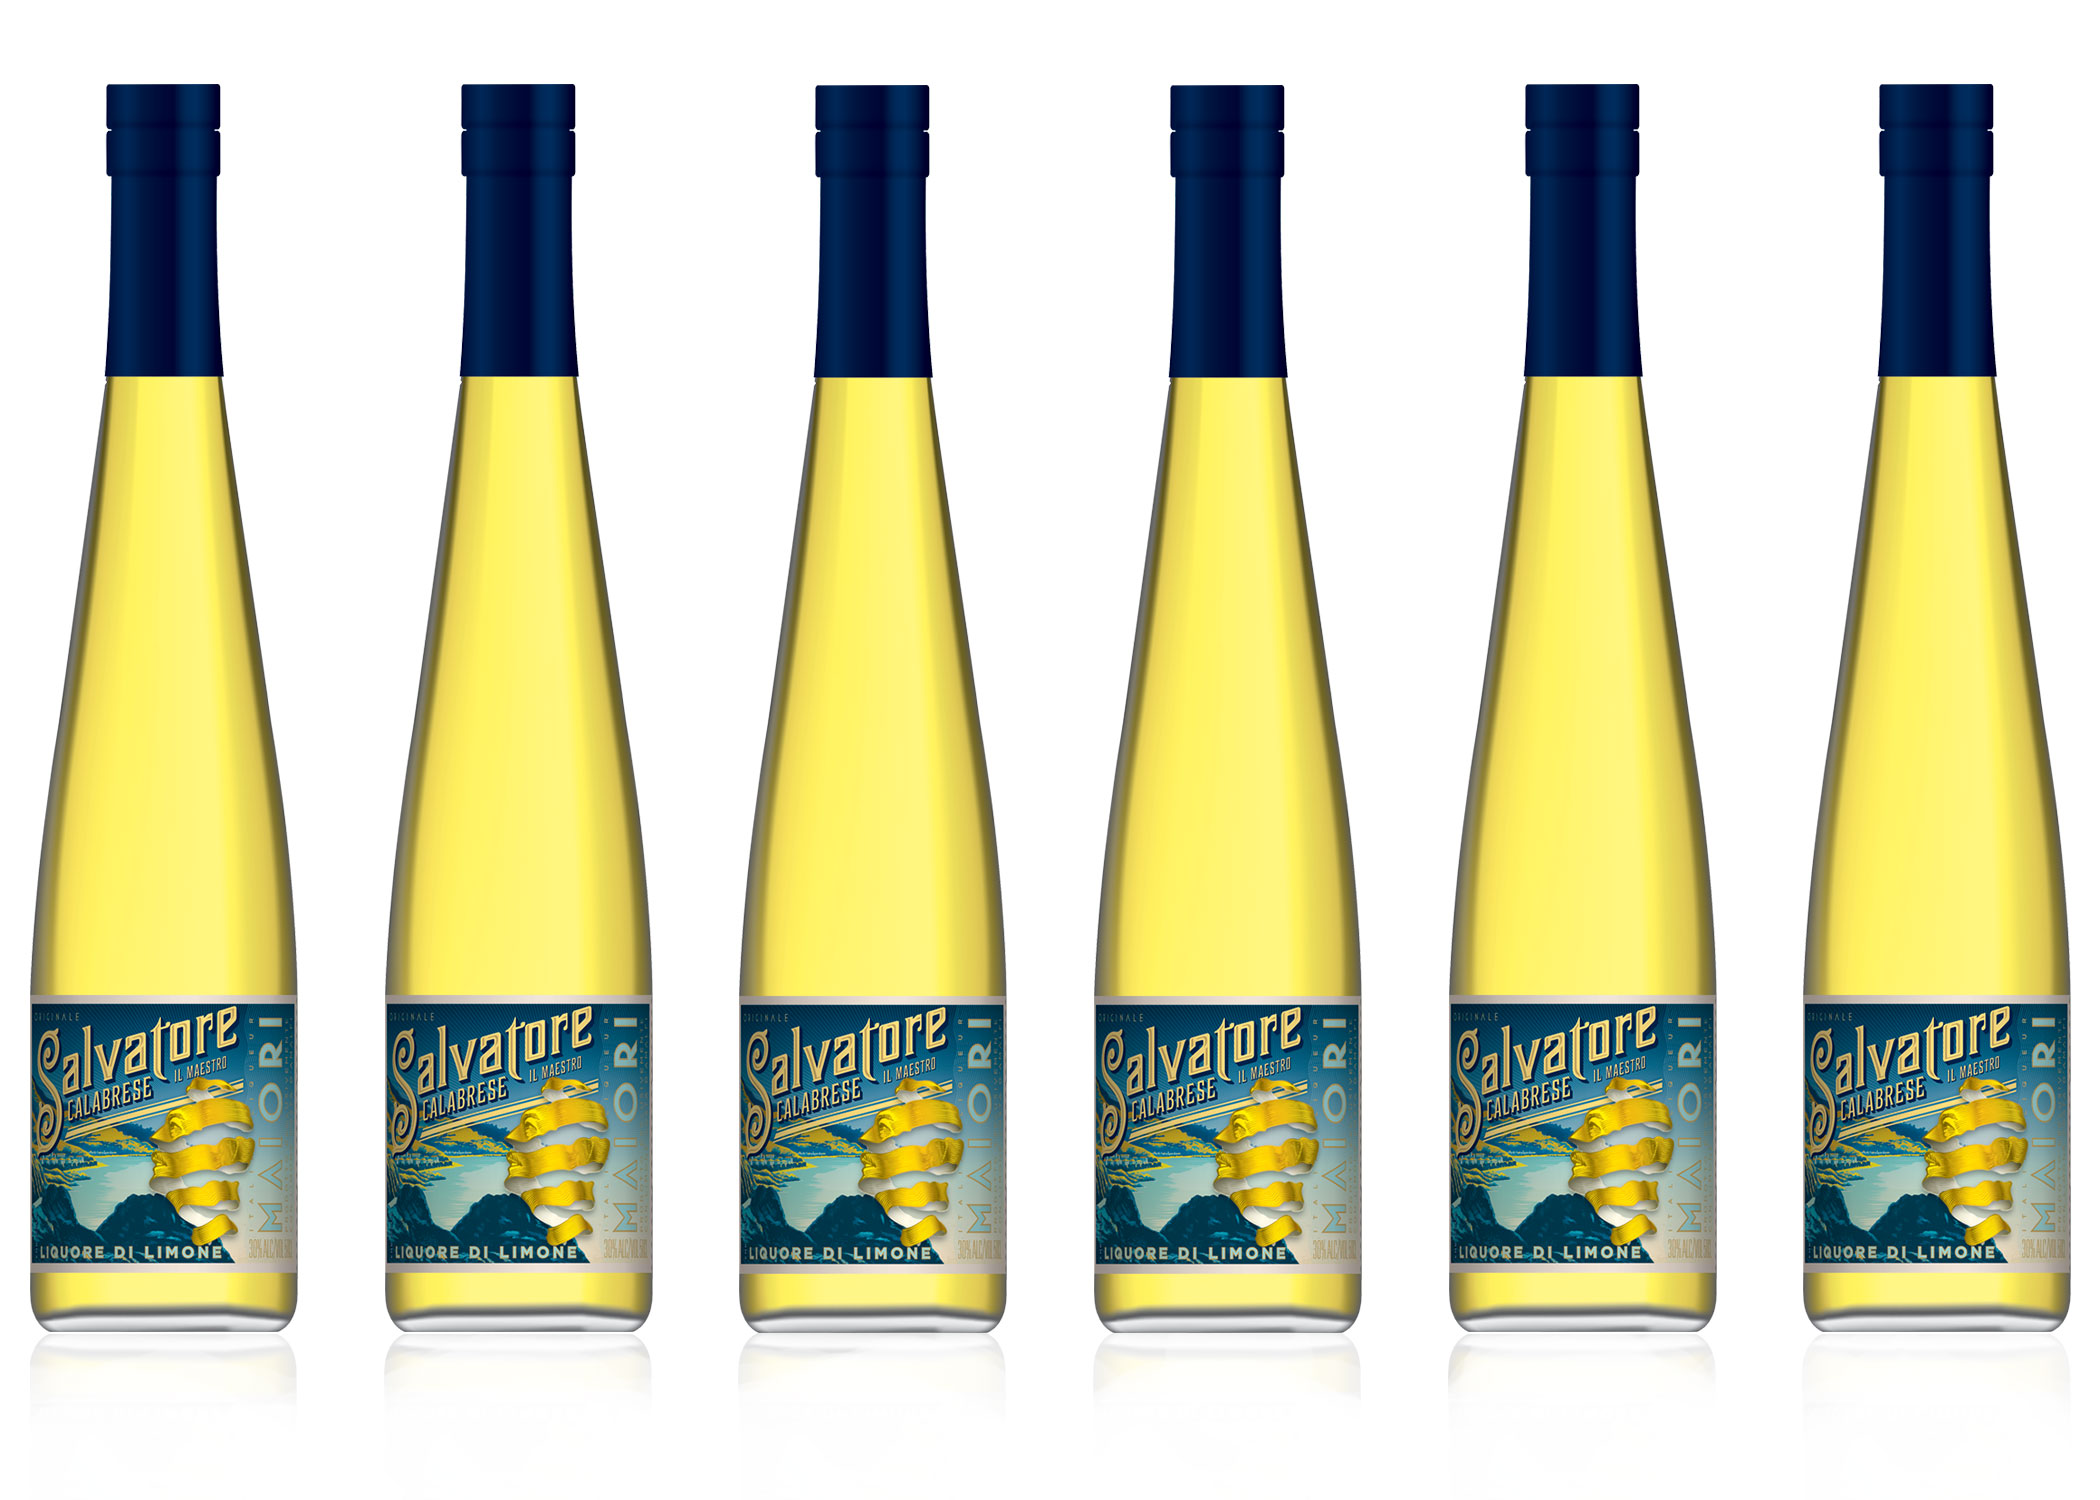 SALVATORE CALABRESE LIQUORE DI LIMONE - Liquore di Limone has a unique zesty aroma and a superb taste which comes from using only natural ingredients its literally the best Lemon Liqueur in the World!